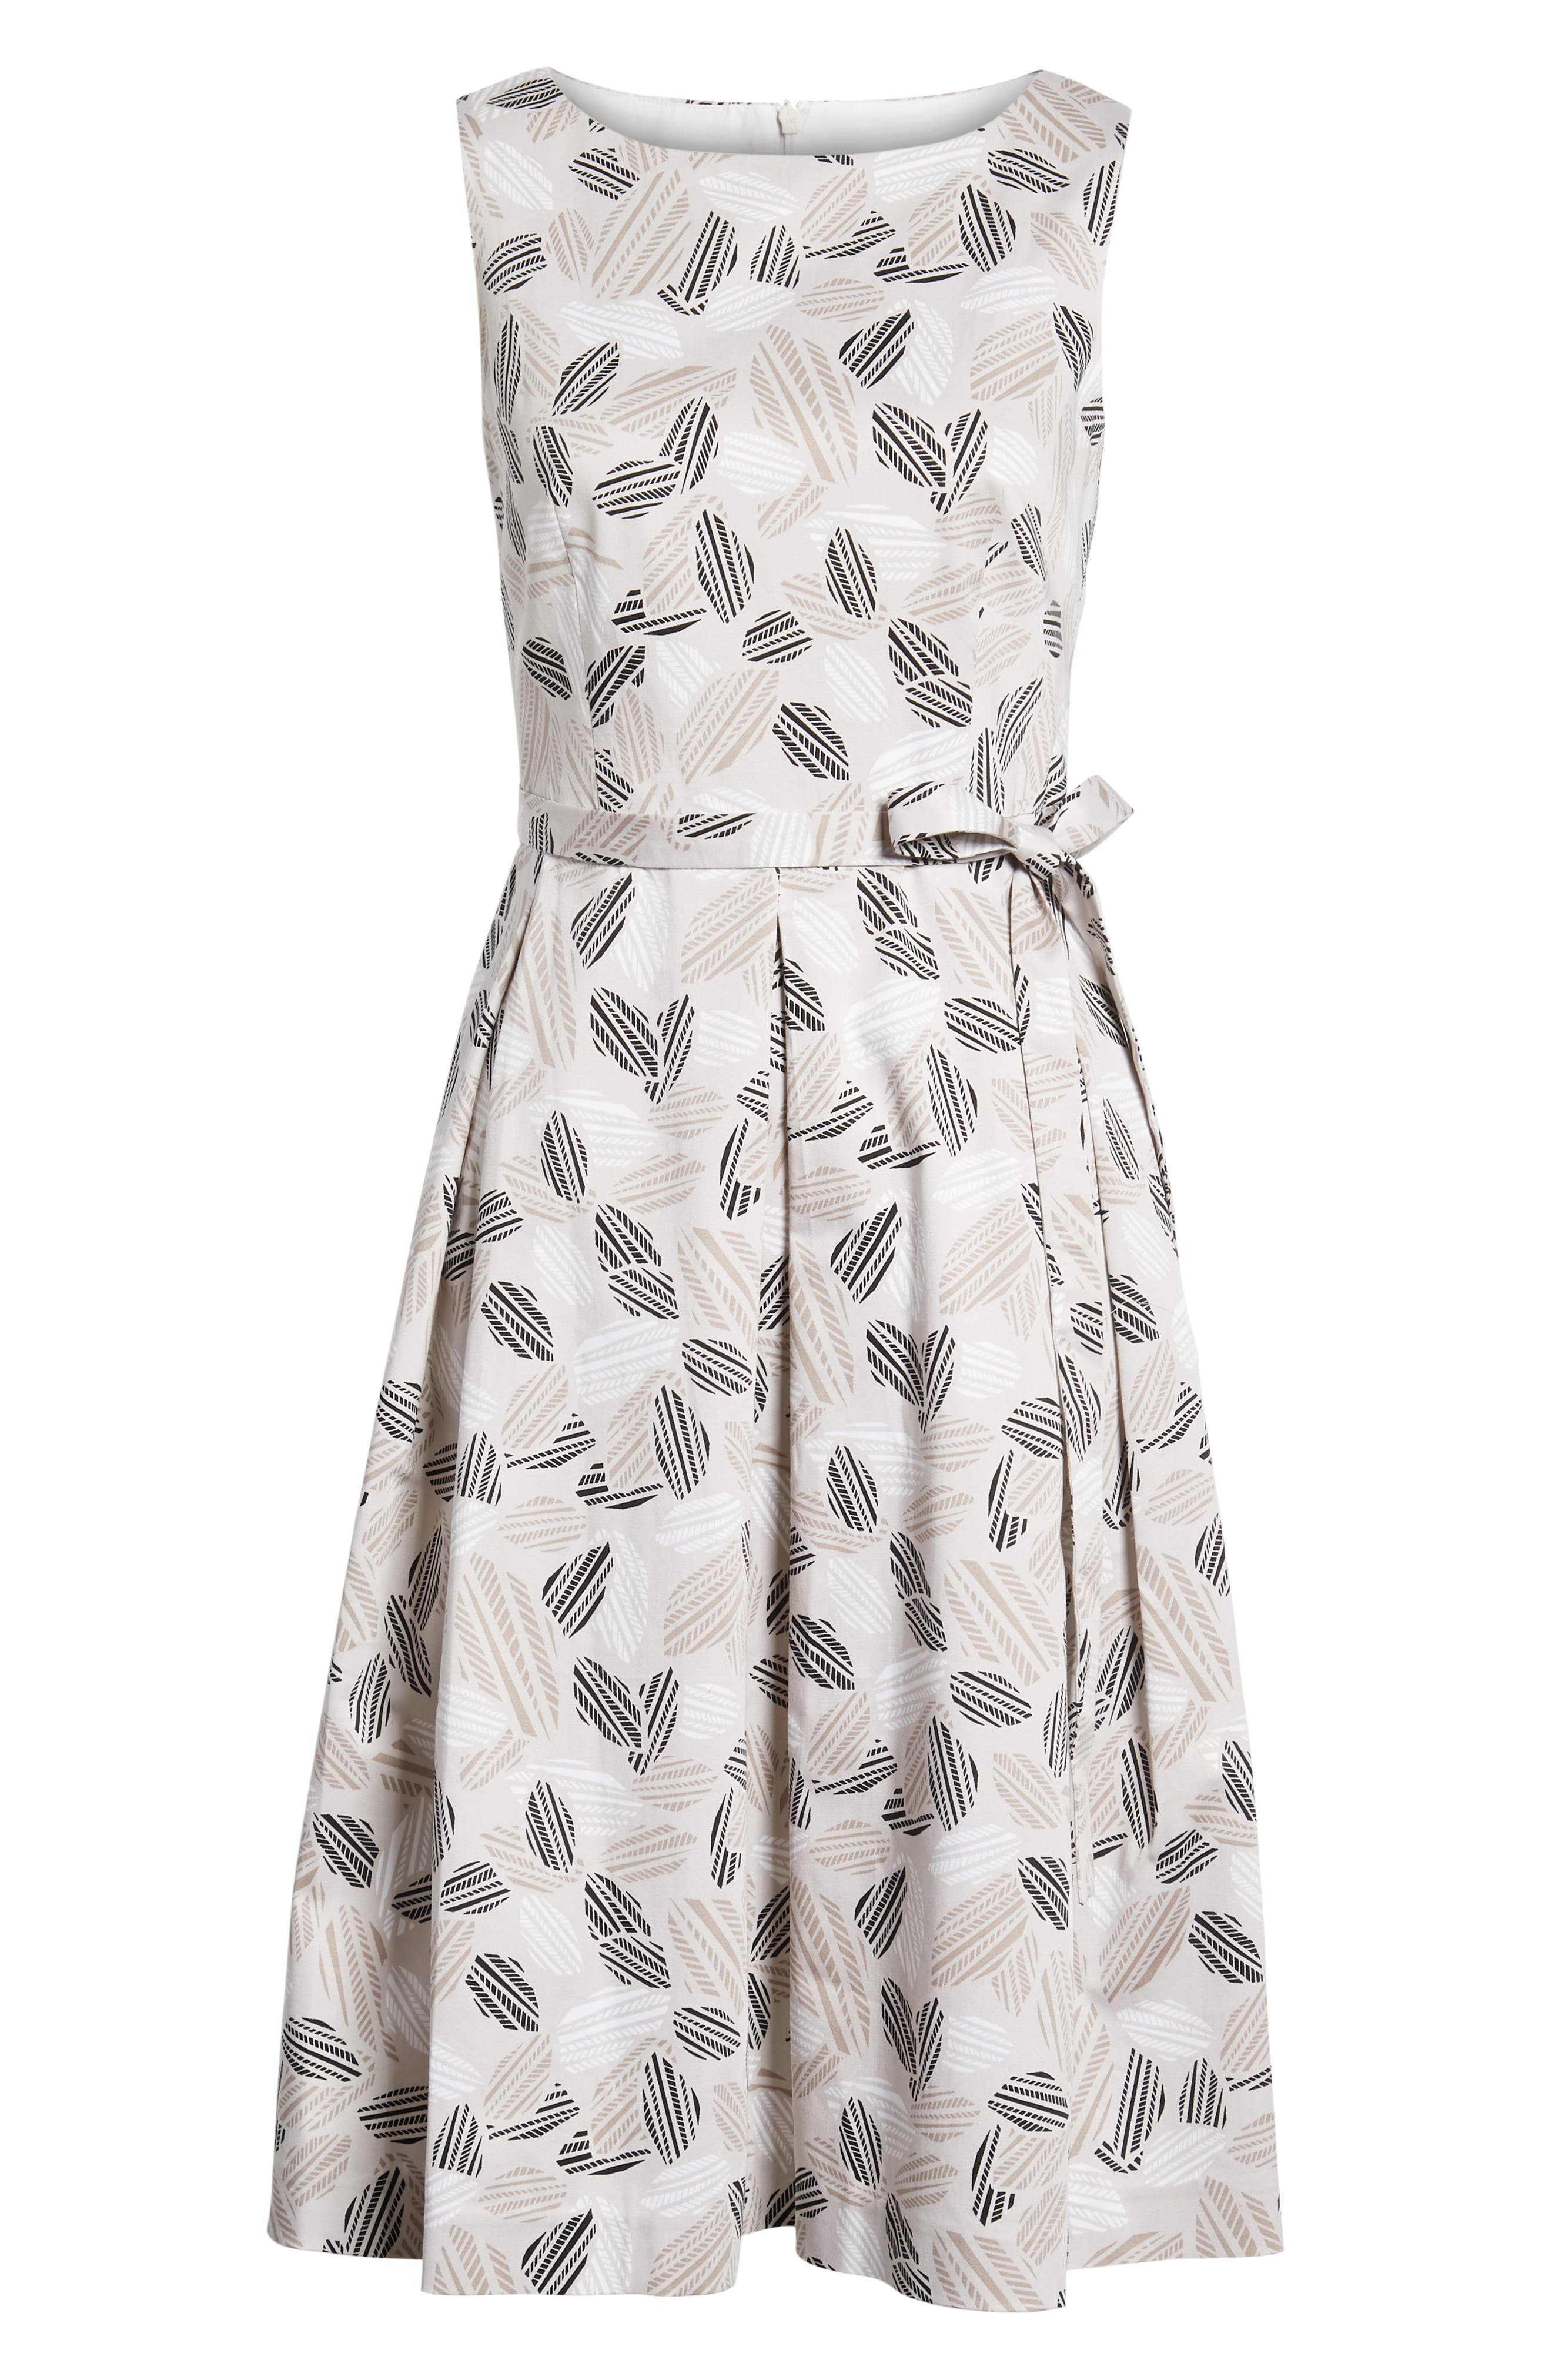 Leaf Print Fit And Flare Dress,                             Alternate thumbnail 7, color,                             Parchment/ Oyster Shell Combo